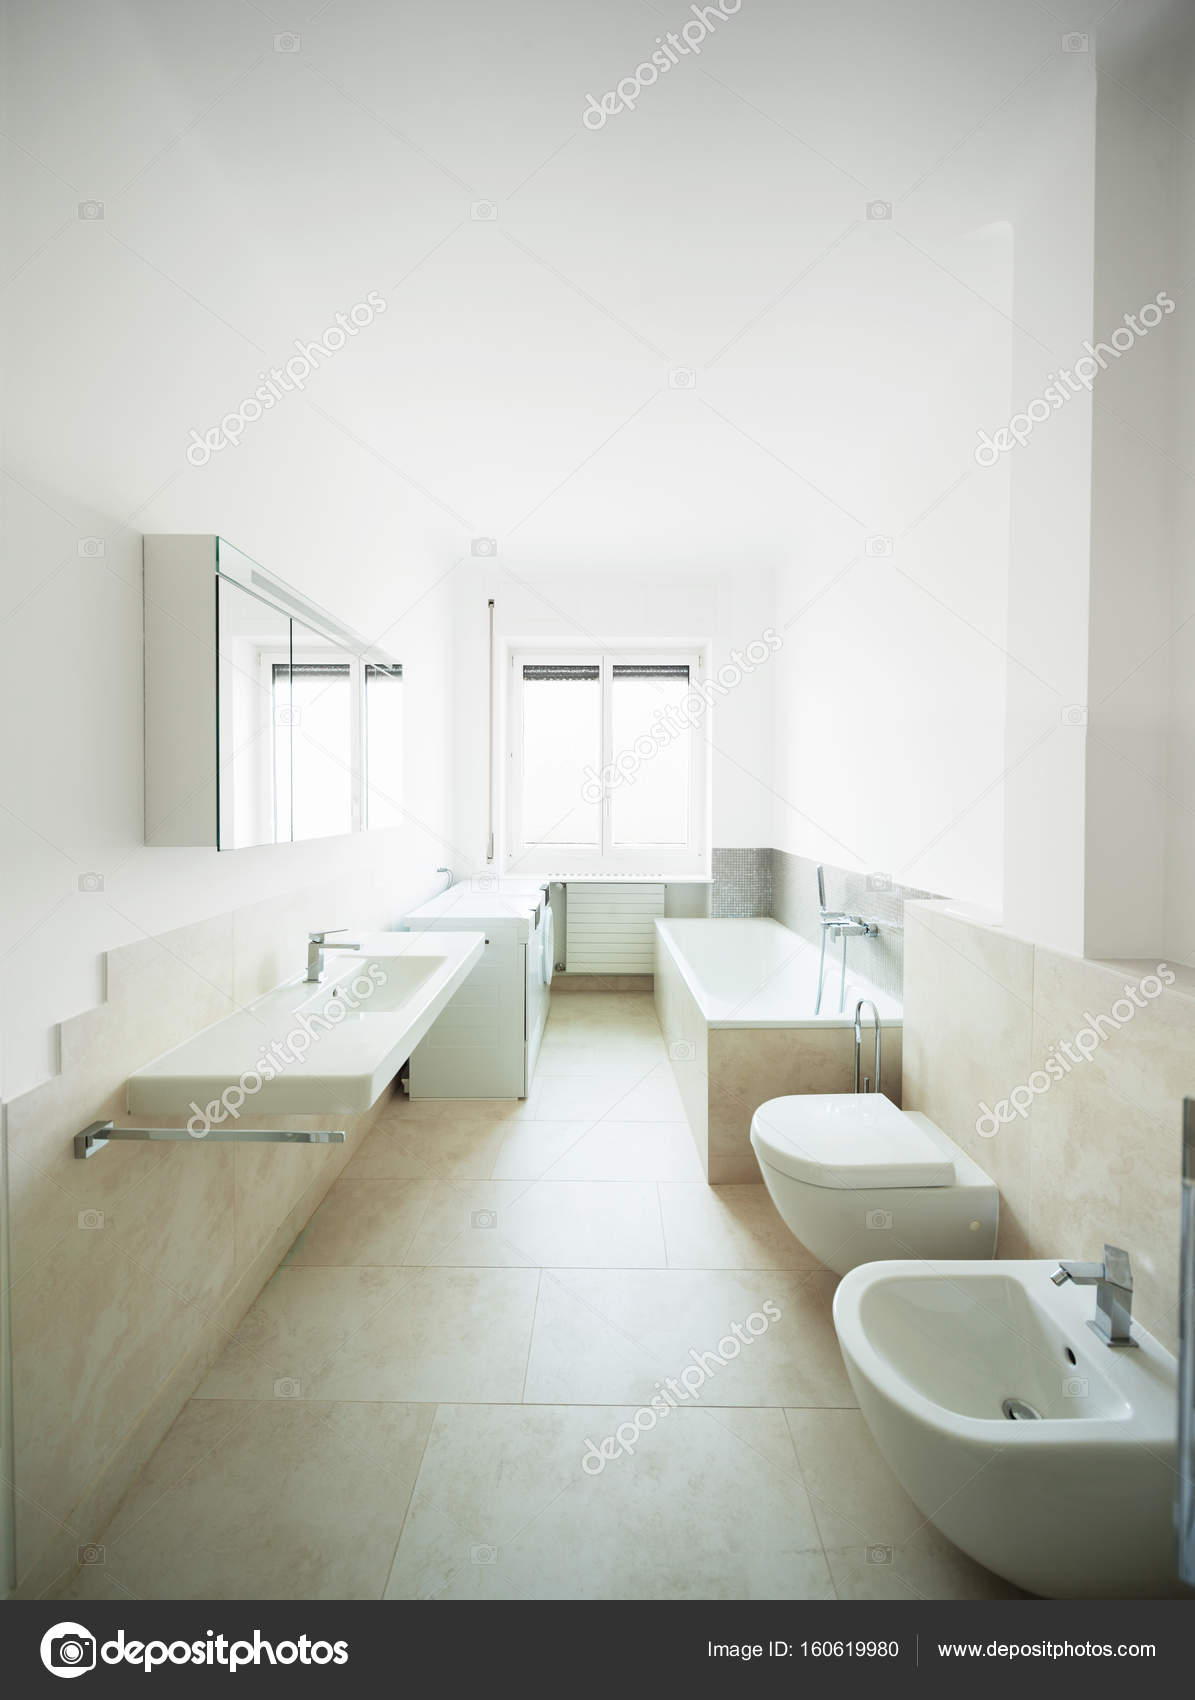 Moderne Toilette Breed Wc In Een Modern Huis Stockfoto Zveiger 160619980